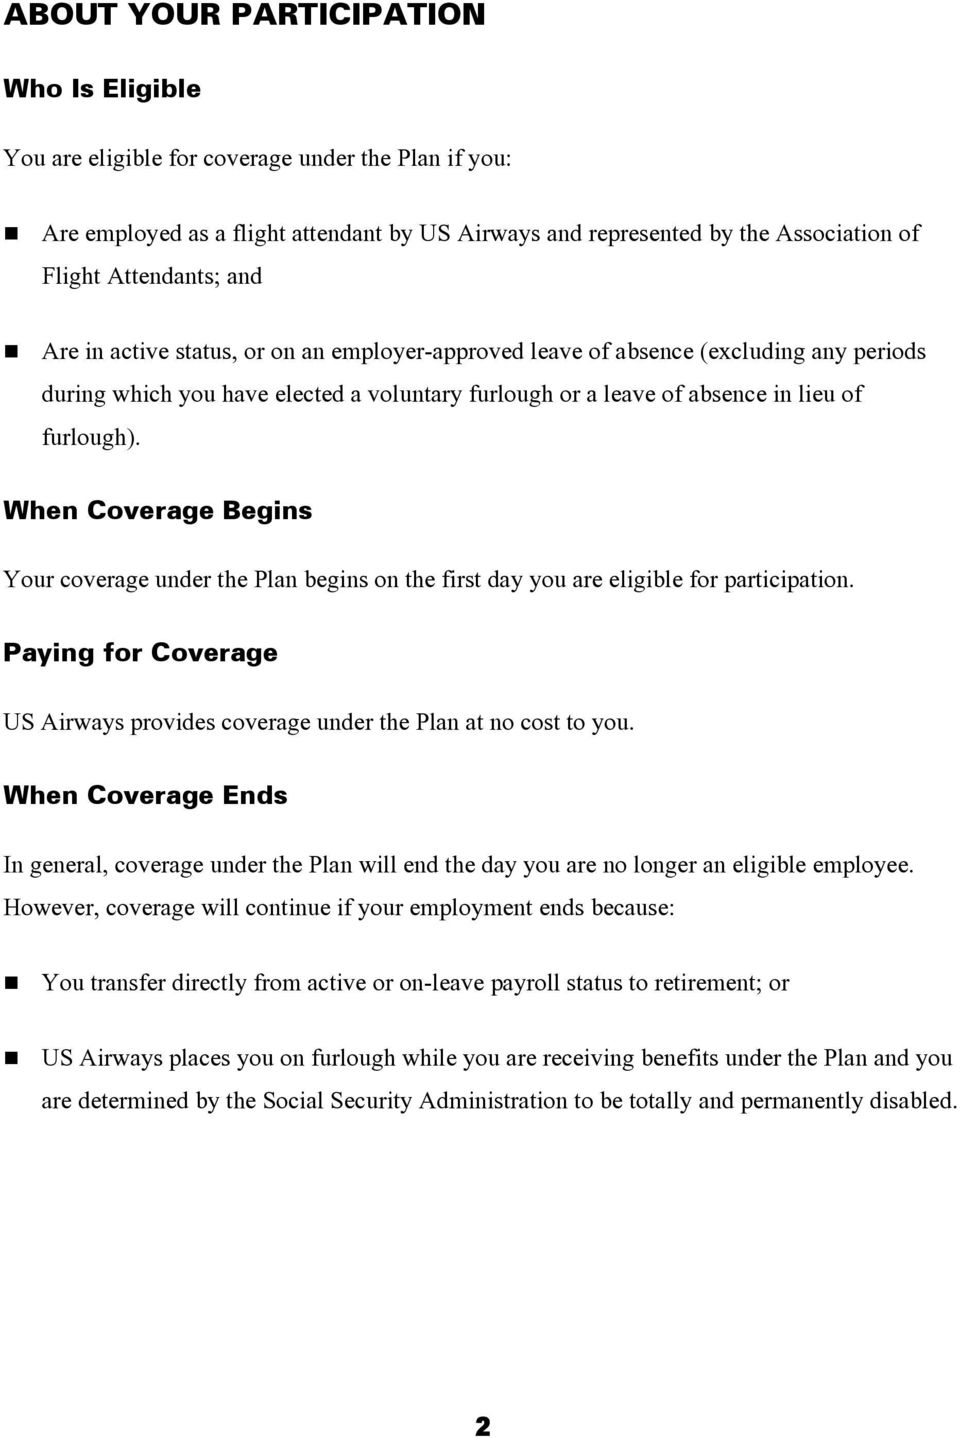 When Coverage Begins Your coverage under the Plan begins on the first day you are eligible for participation. Paying for Coverage US Airways provides coverage under the Plan at no cost to you.